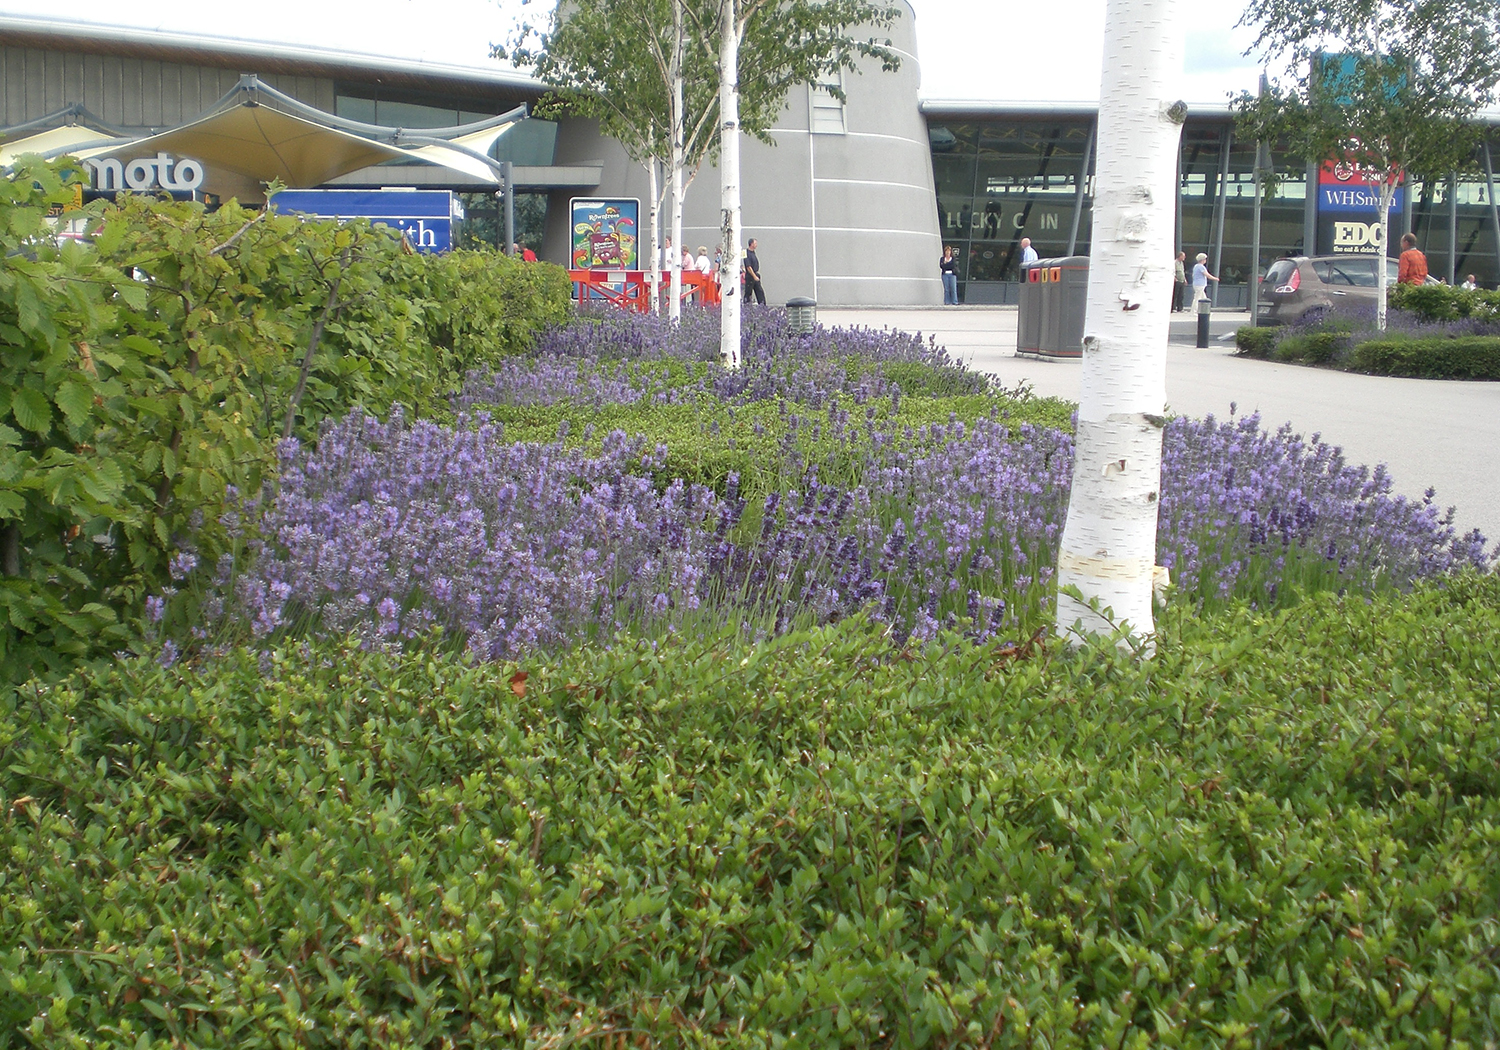 Projects-CommInd-Wetherby-Planting-1500x1050